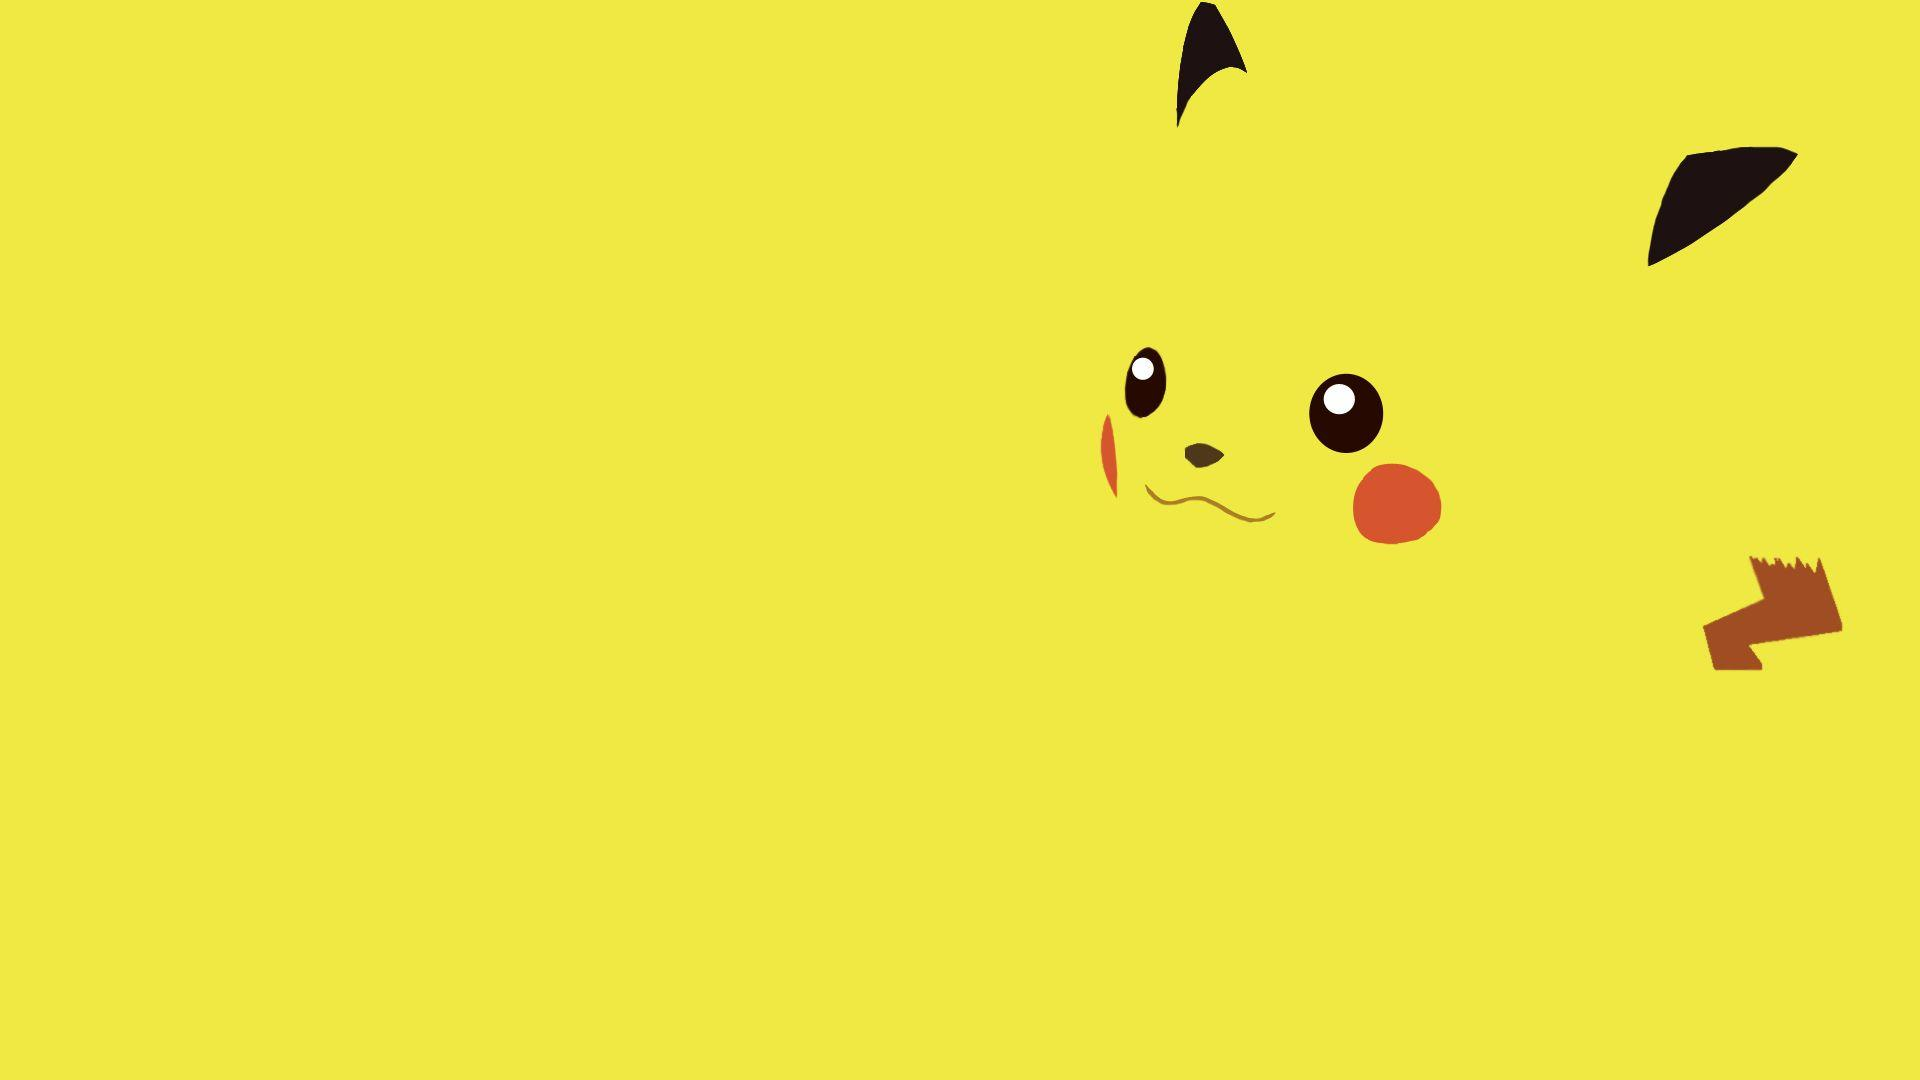 Pokemon Pikachu Wallpapers 1920x1080